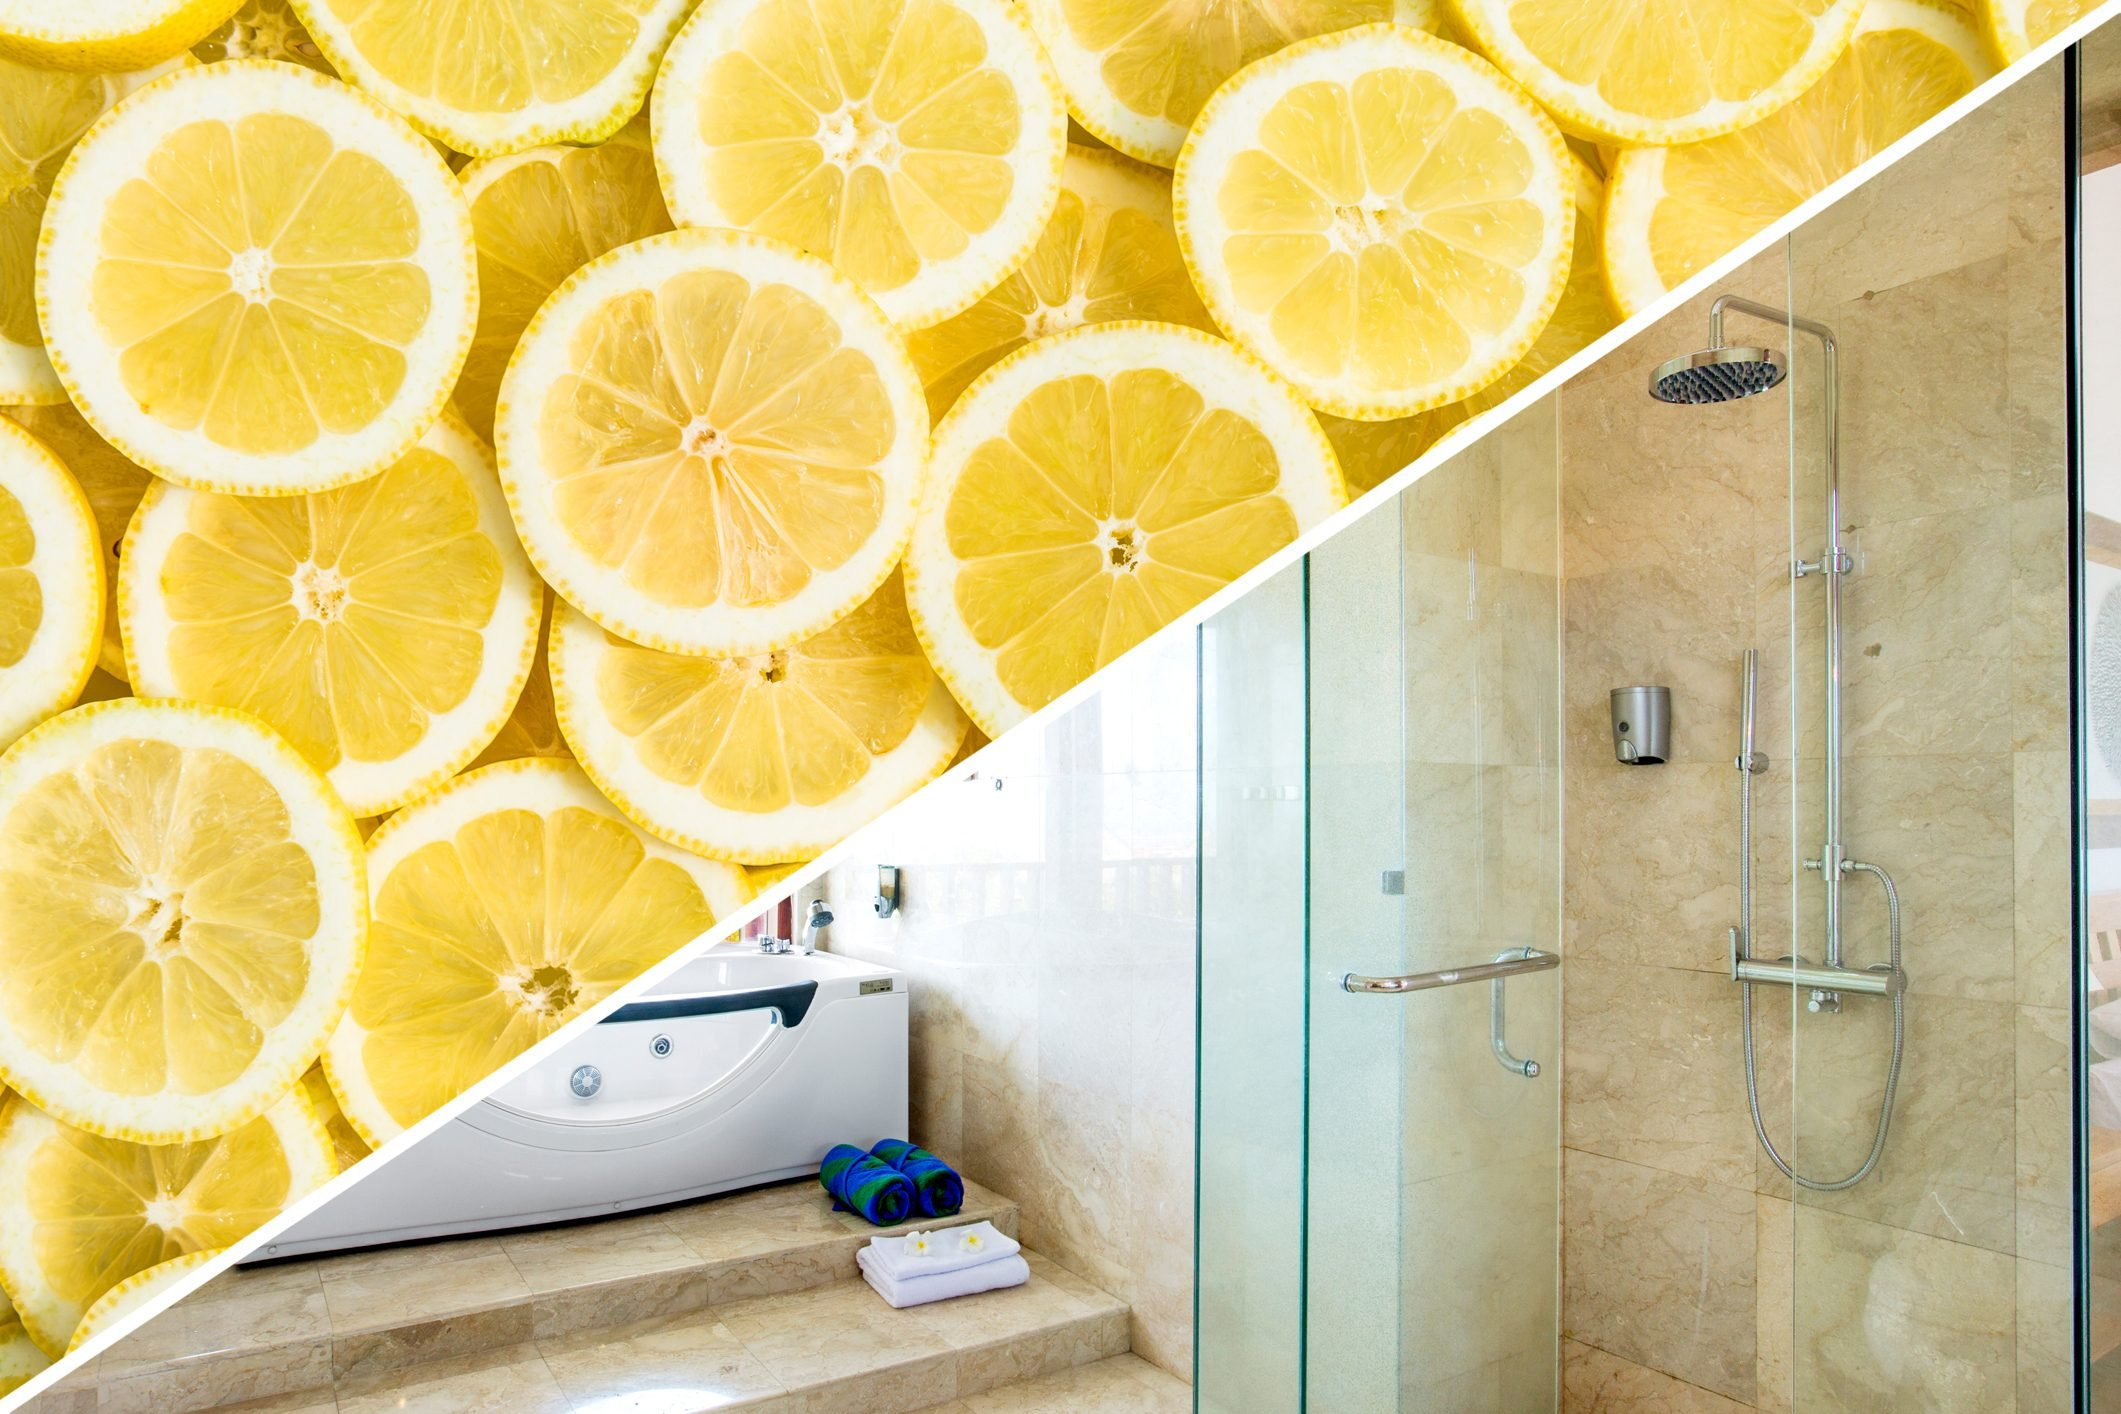 grime clean shower door lemon uses